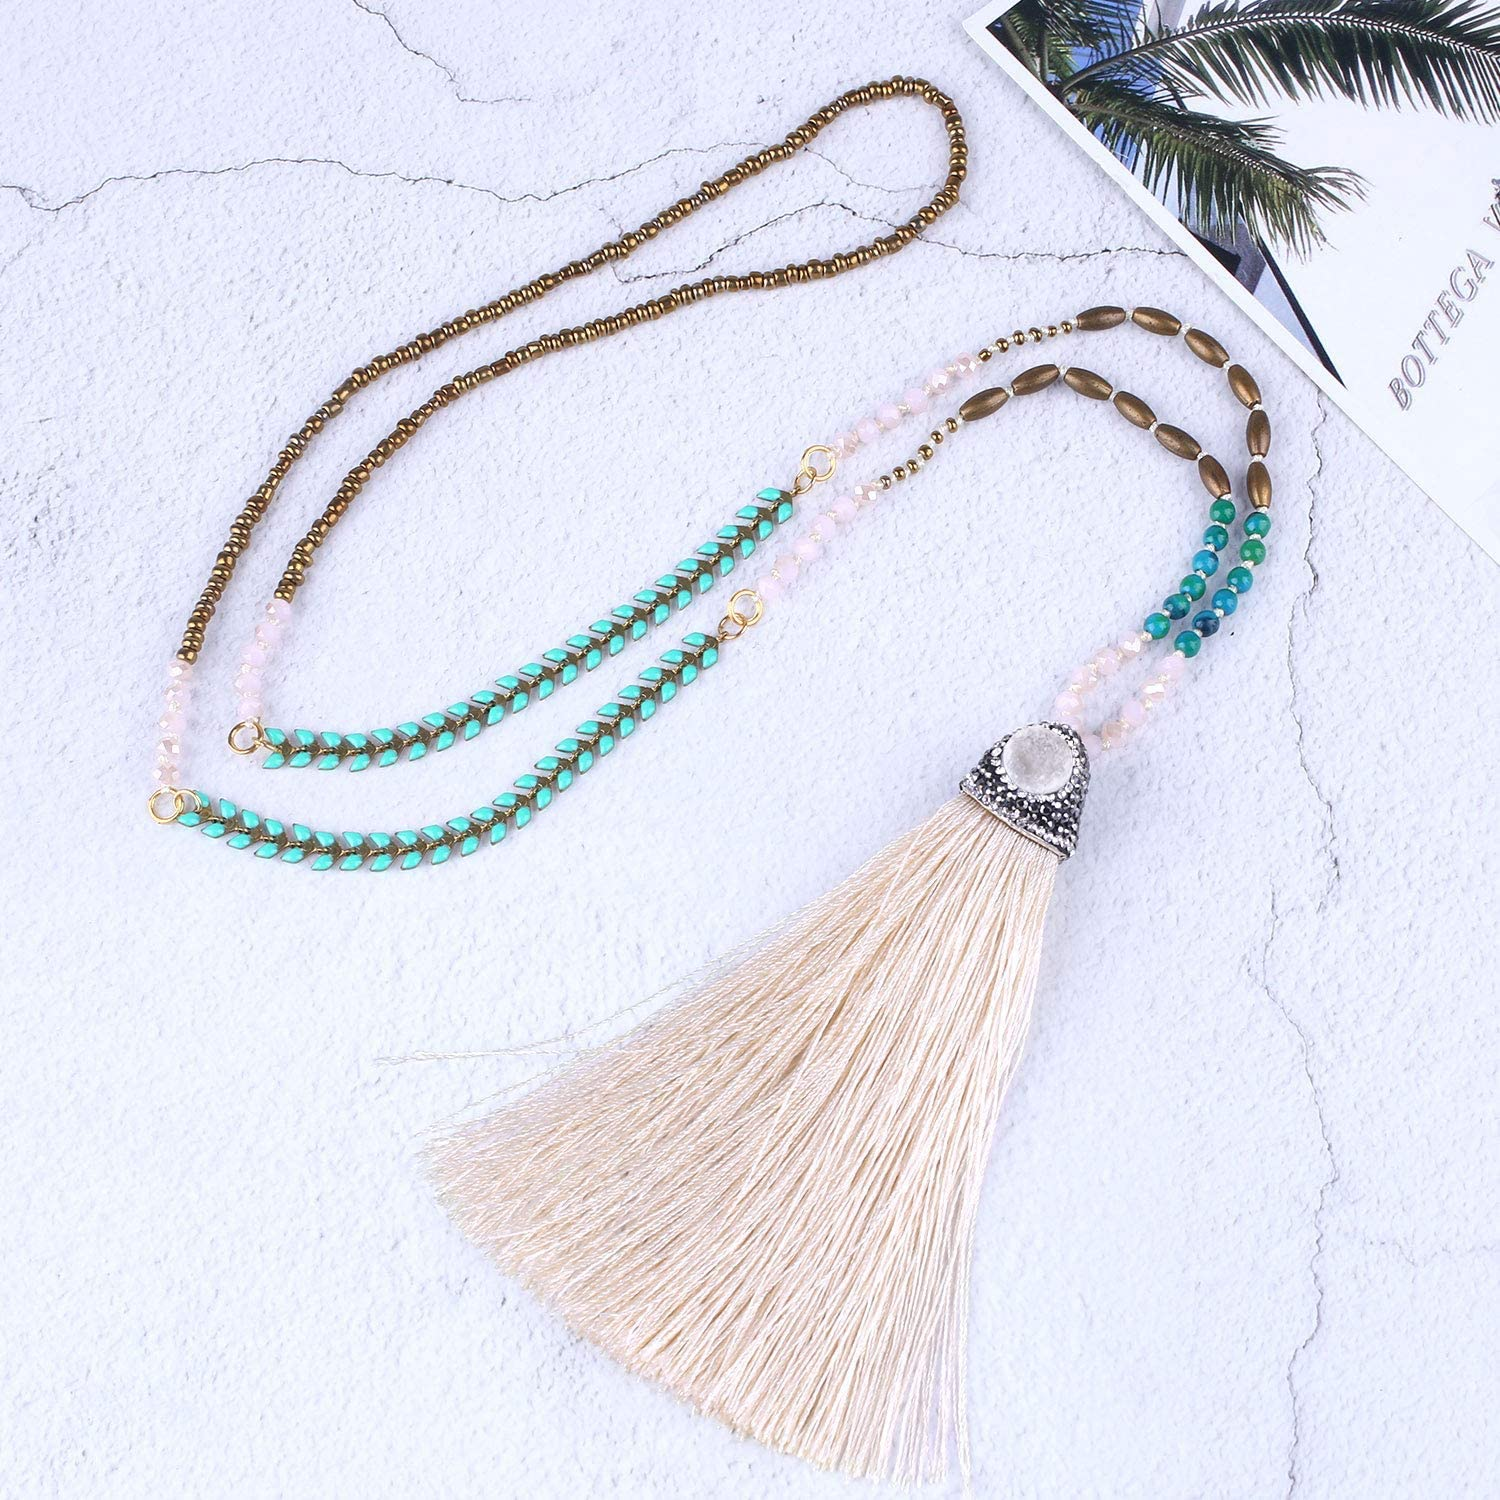 C·QUAN CHI Women Tassel Necklace Crystal Beads Necklace Handmade Pearl Charms Chain Lockets Necklace